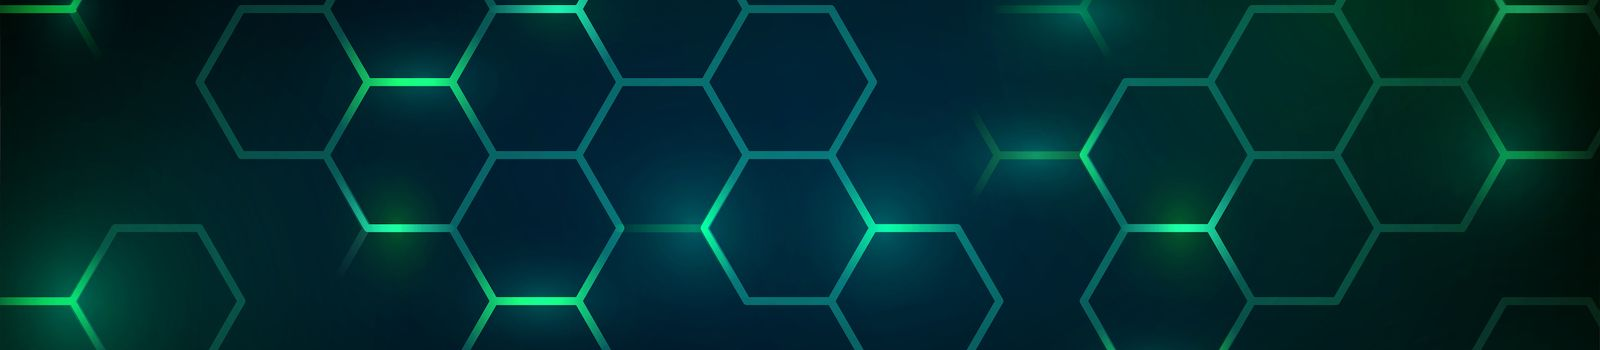 Abstract technology dark background with green luminous hexagons